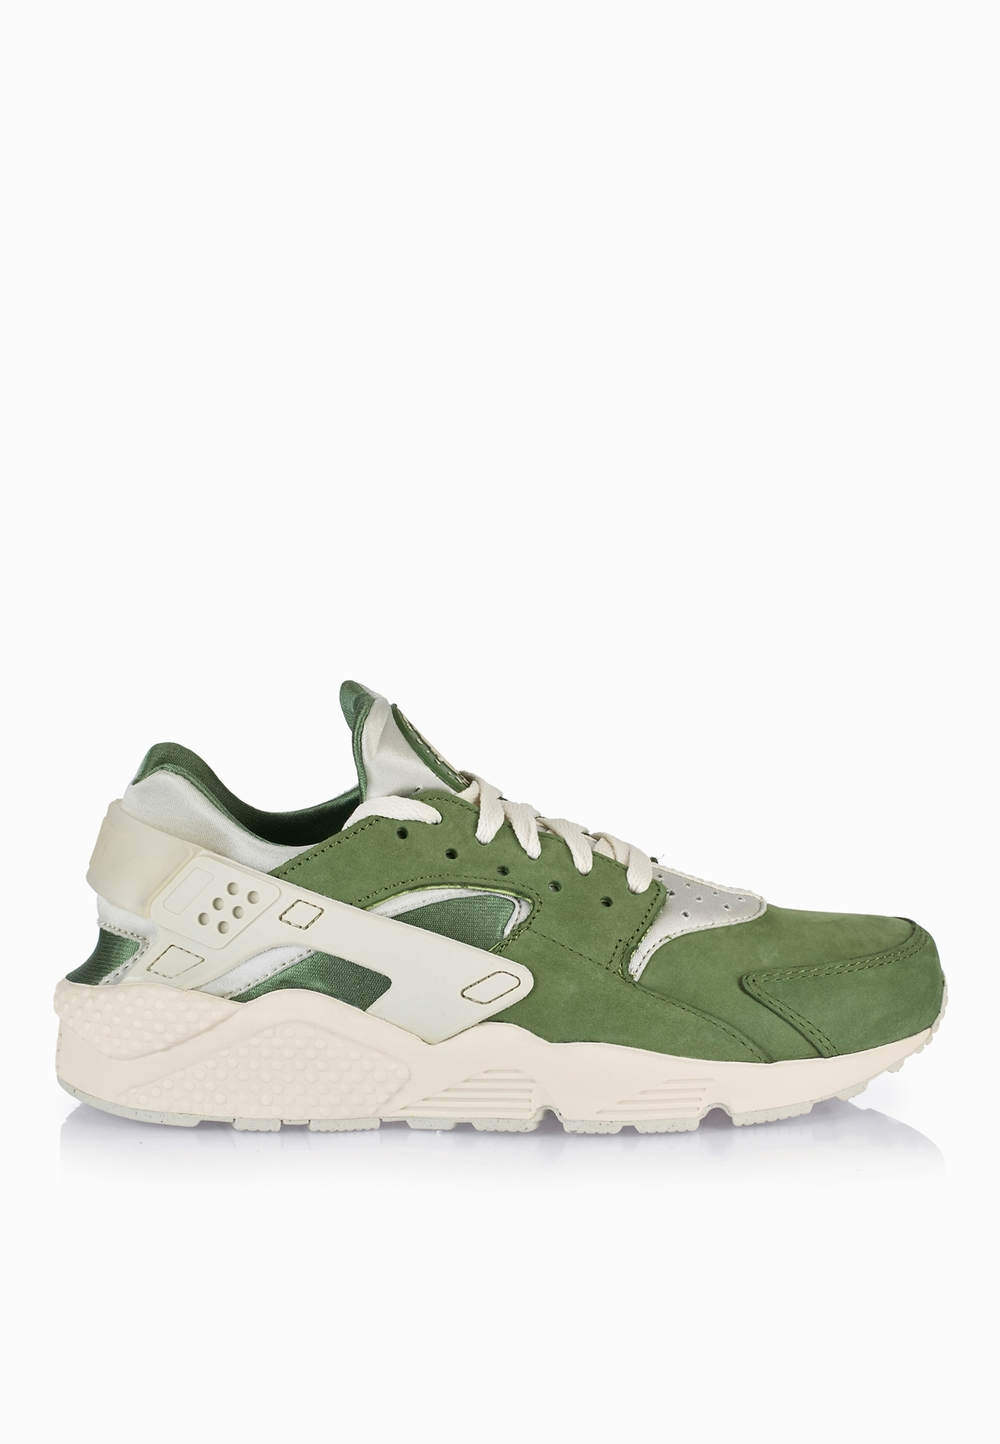 NIKE// Air Huarache Run PRM// 629 AED